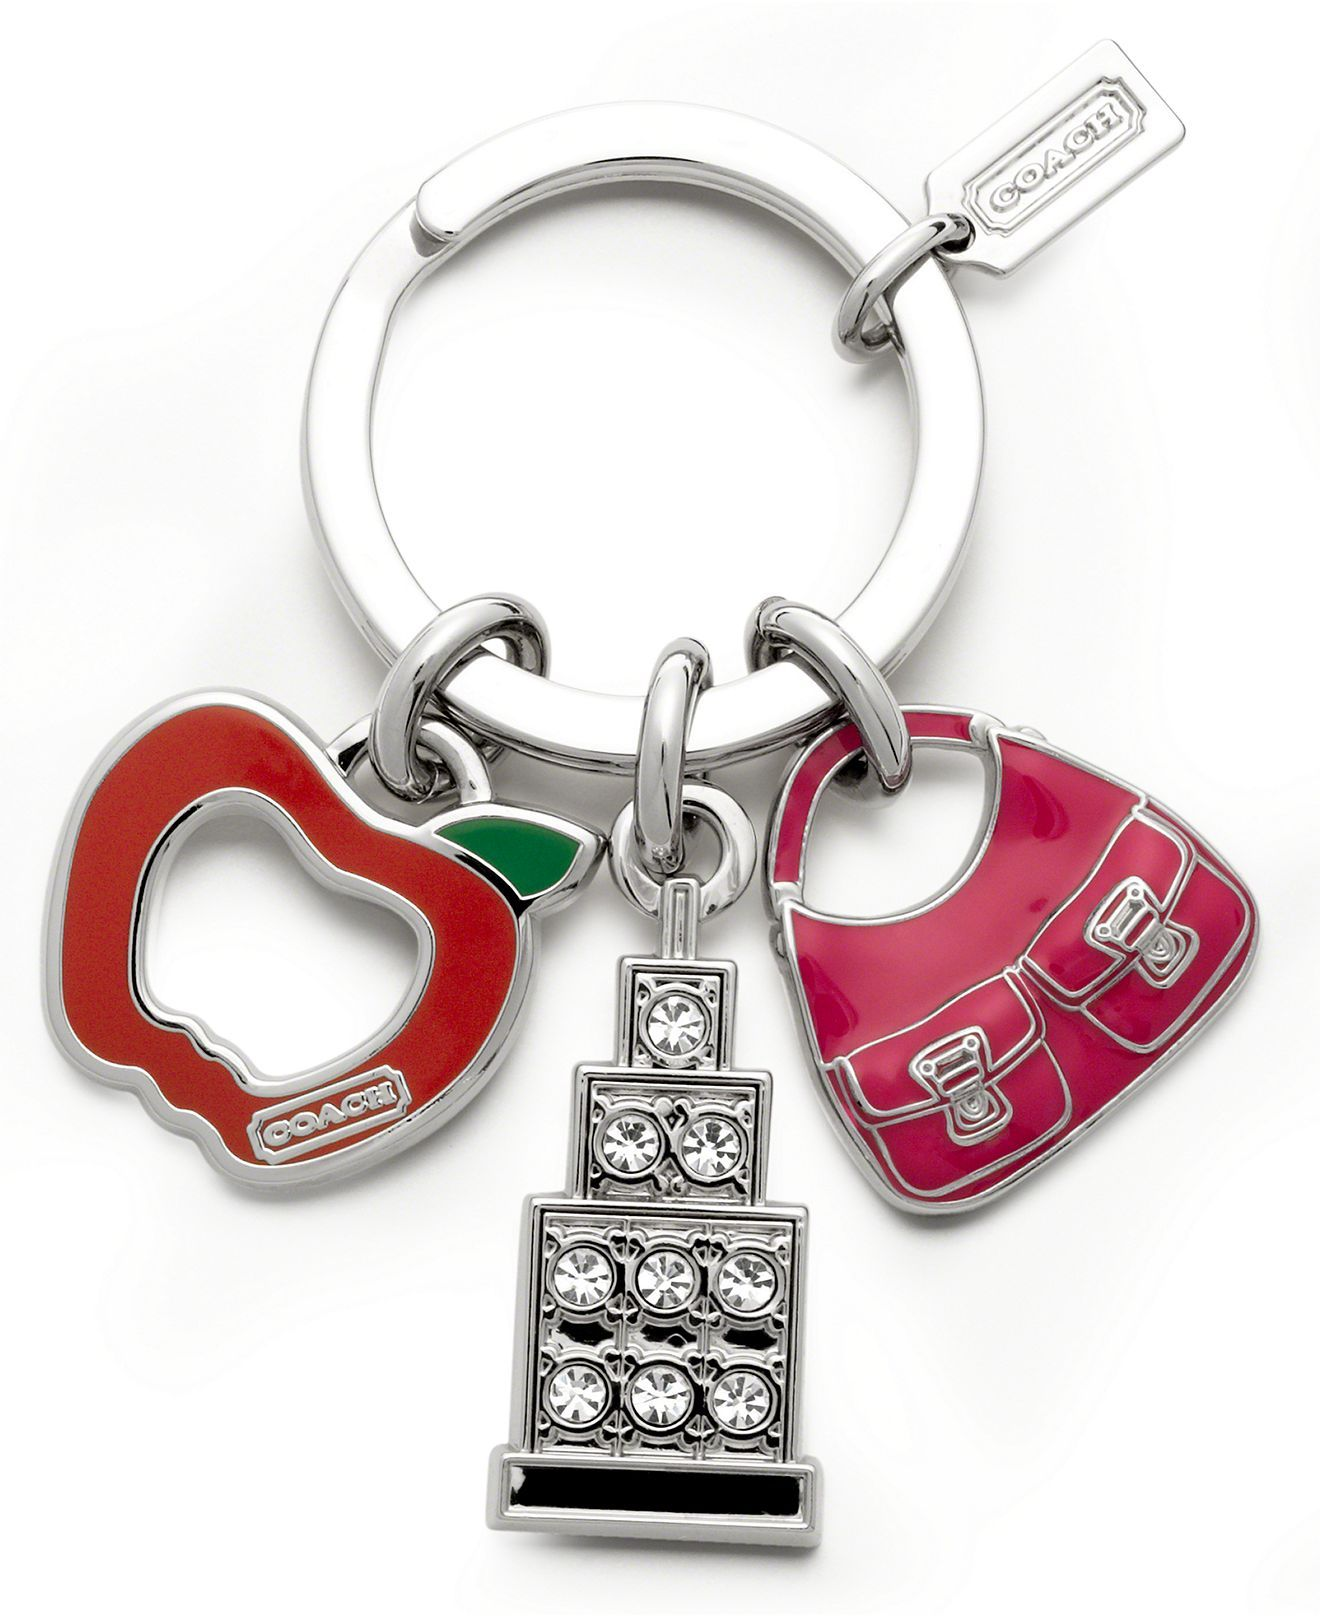 COACH FASHIONS NIGHT OUT KEY RING | Llaveros | Llaveros ... - photo#39